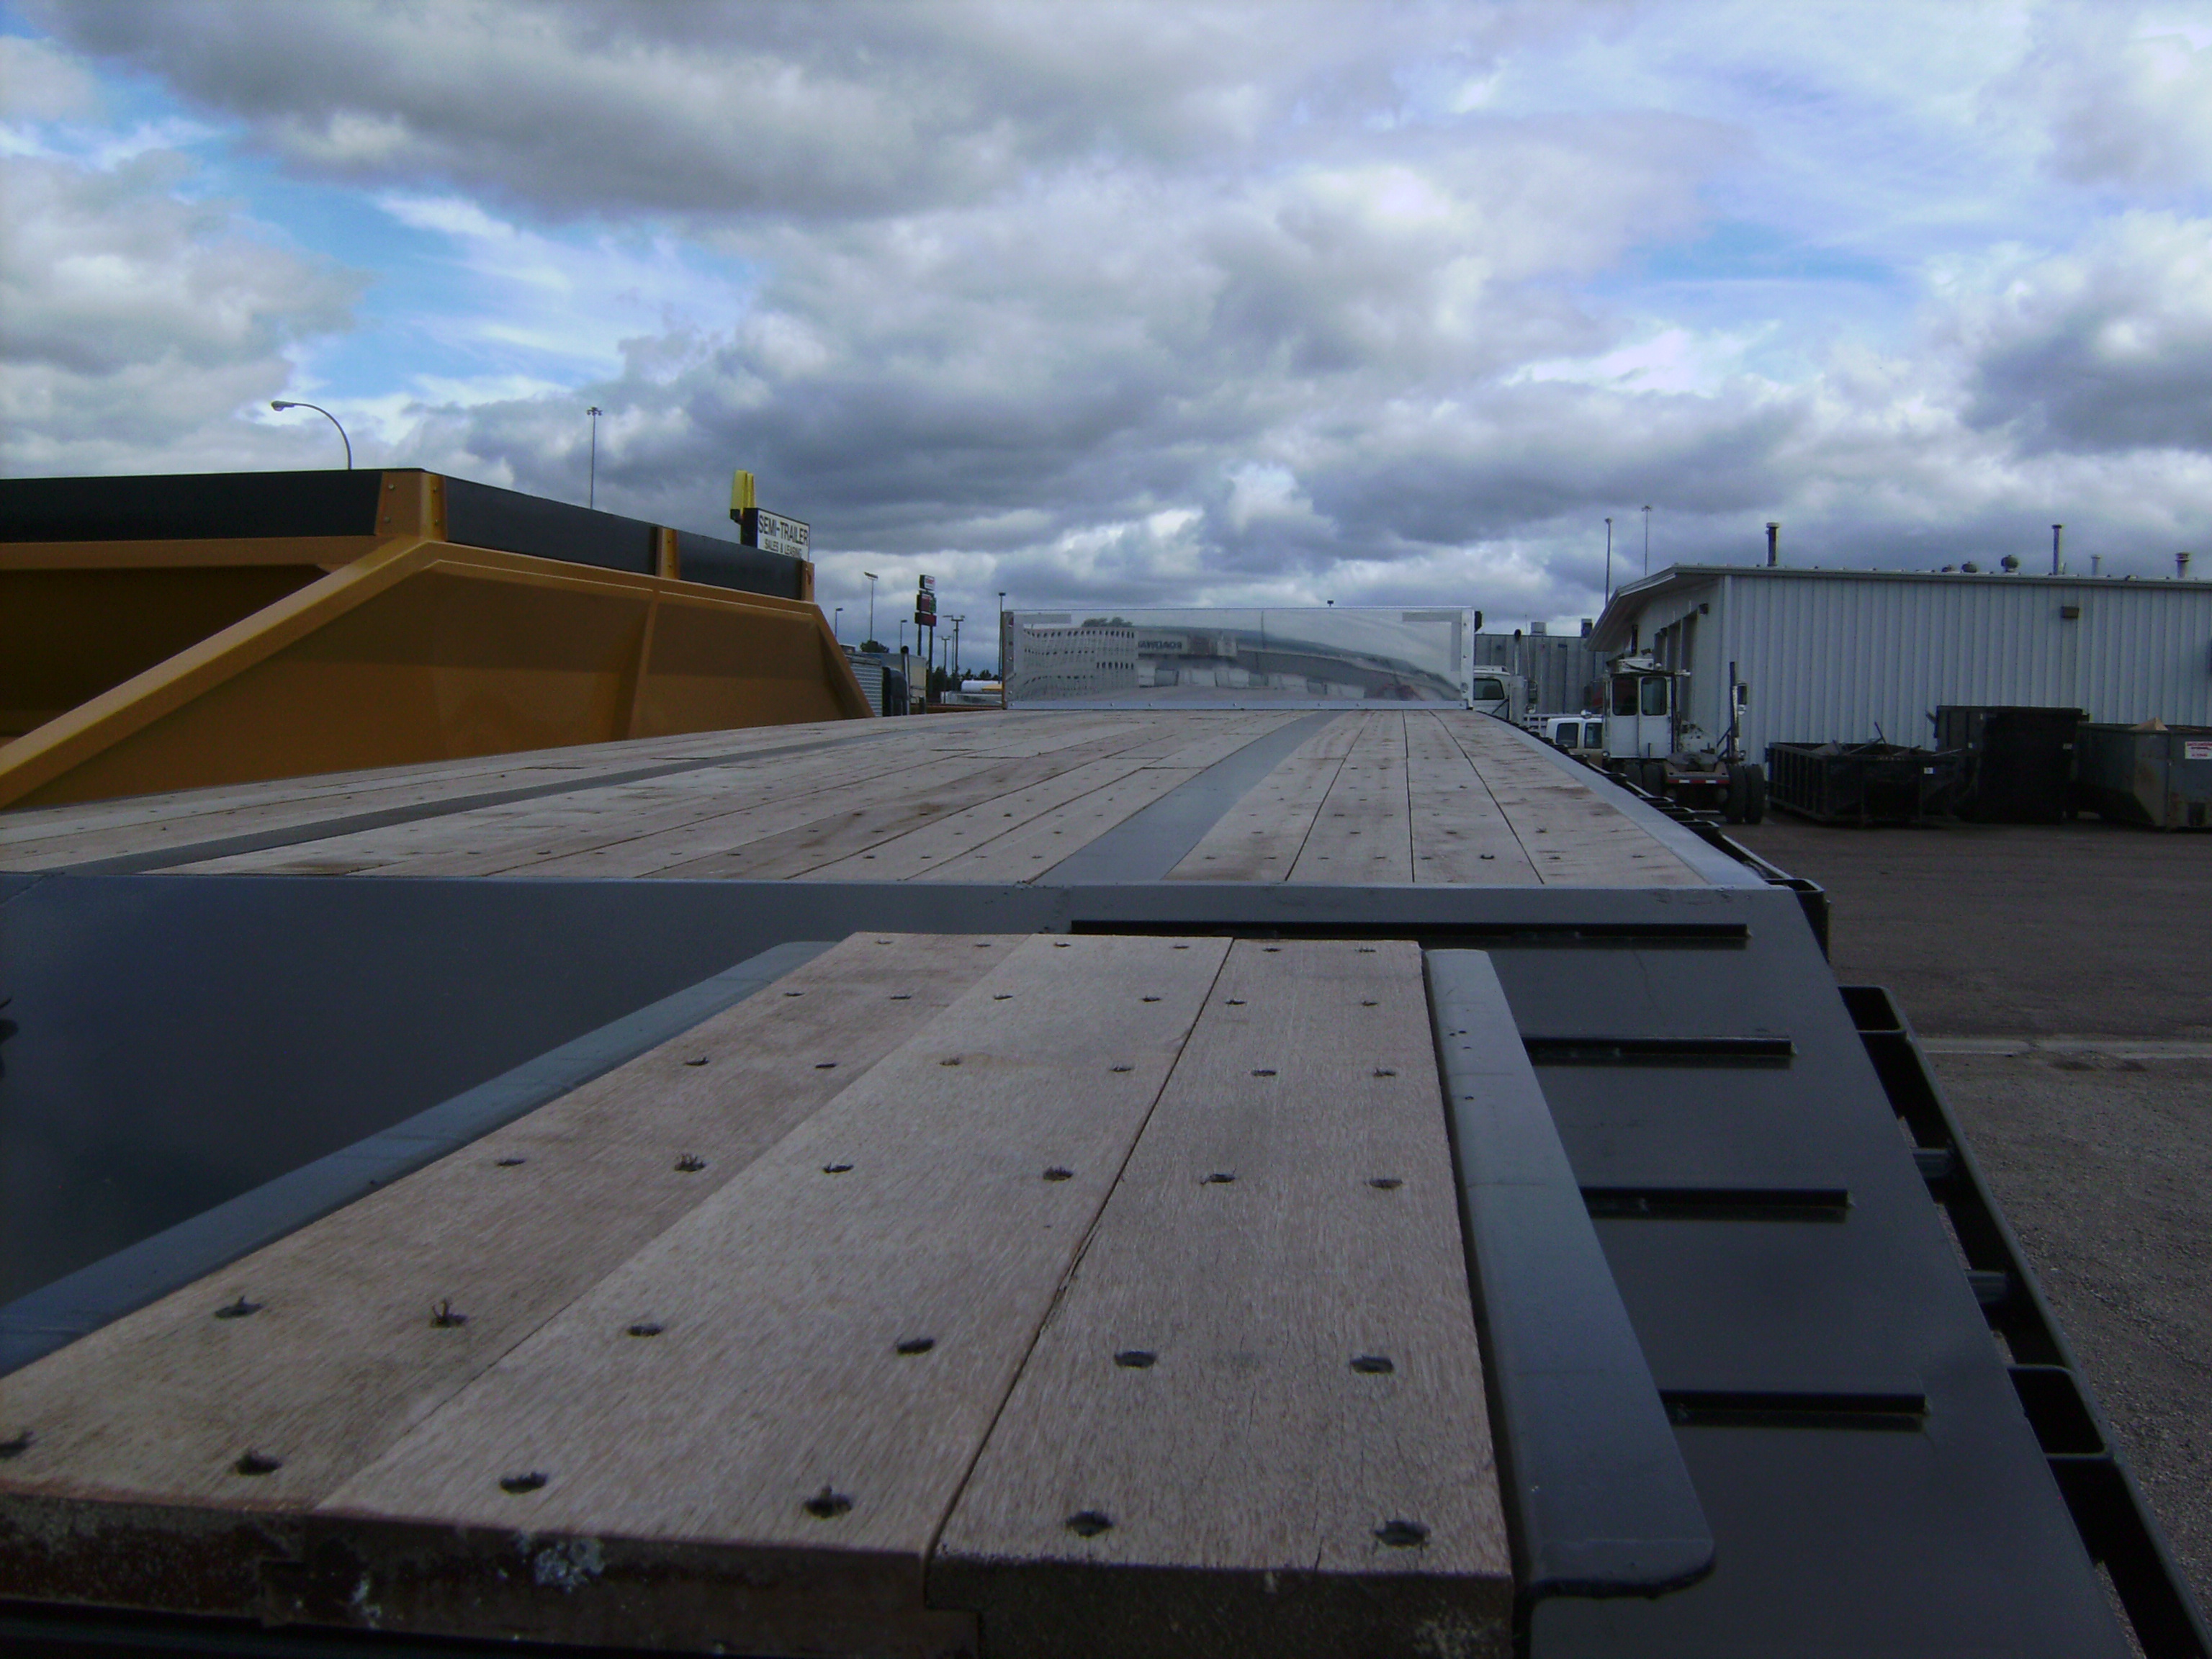 http://www.semitrailersalesandleasing.com/image/cache/2018_Transcraft_48x102_dropdeck_w_ramps_006.JPG Image